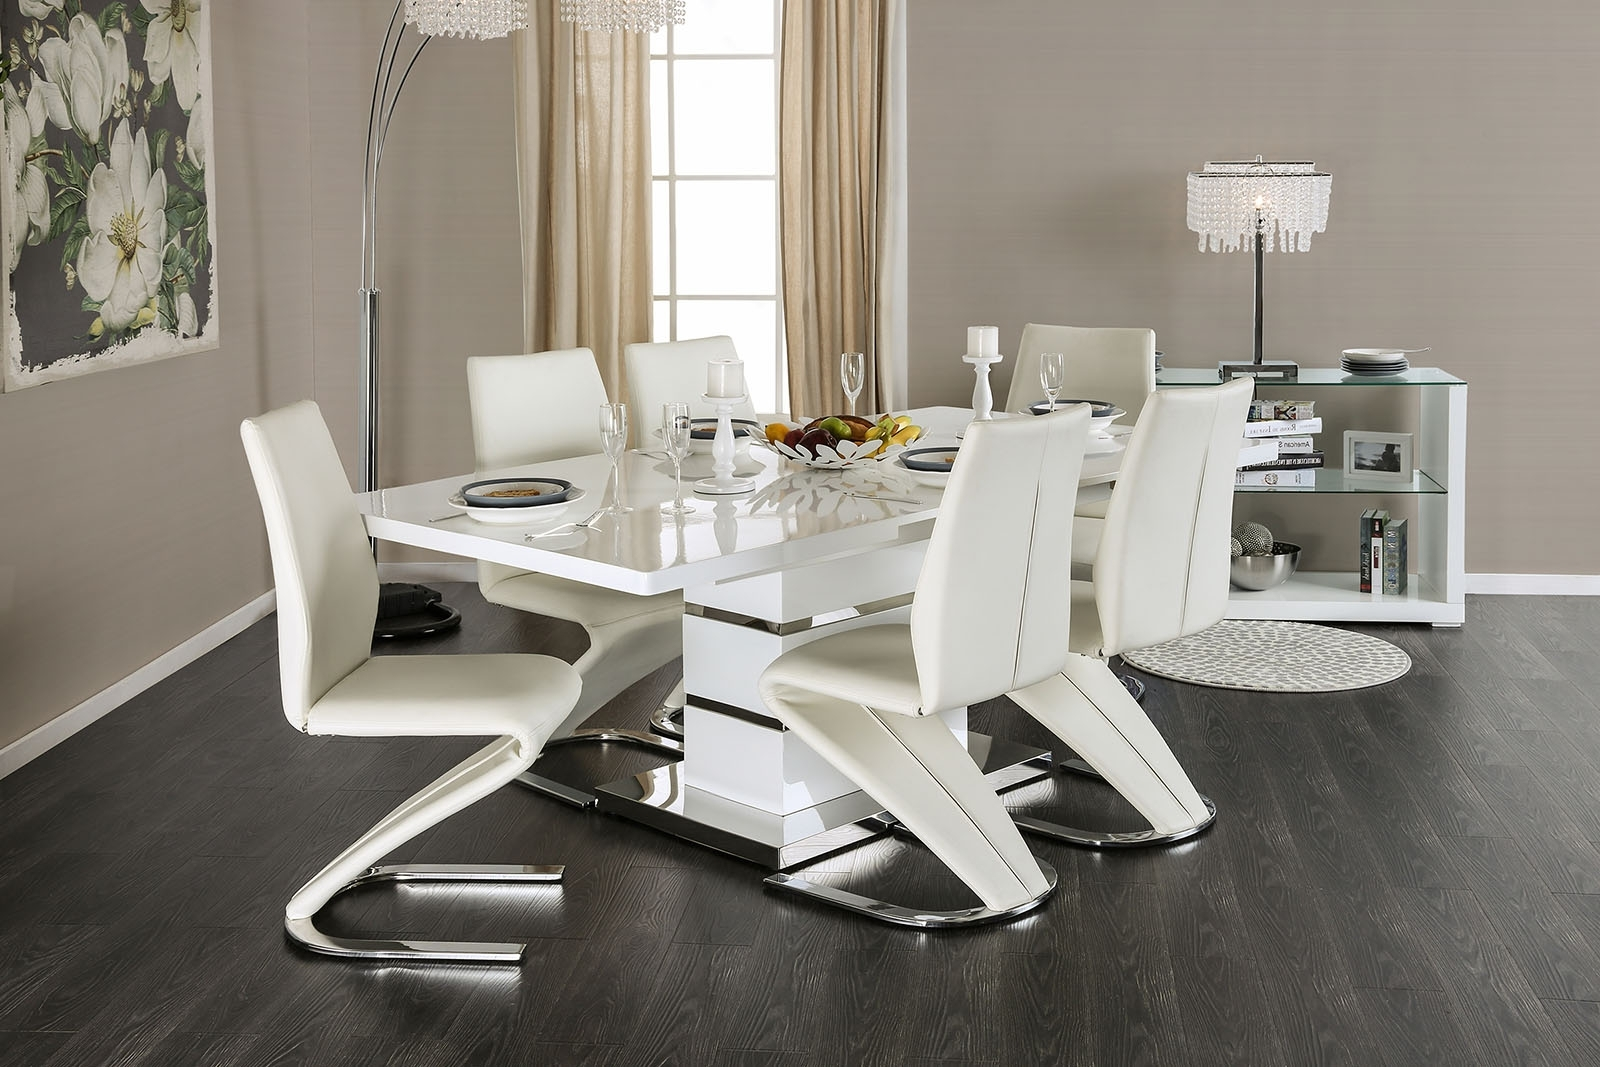 Most Recent Midvale Contemporary Style White High Gloss Lacquer Finish & Chrome Within White Gloss Dining Room Tables (View 10 of 25)